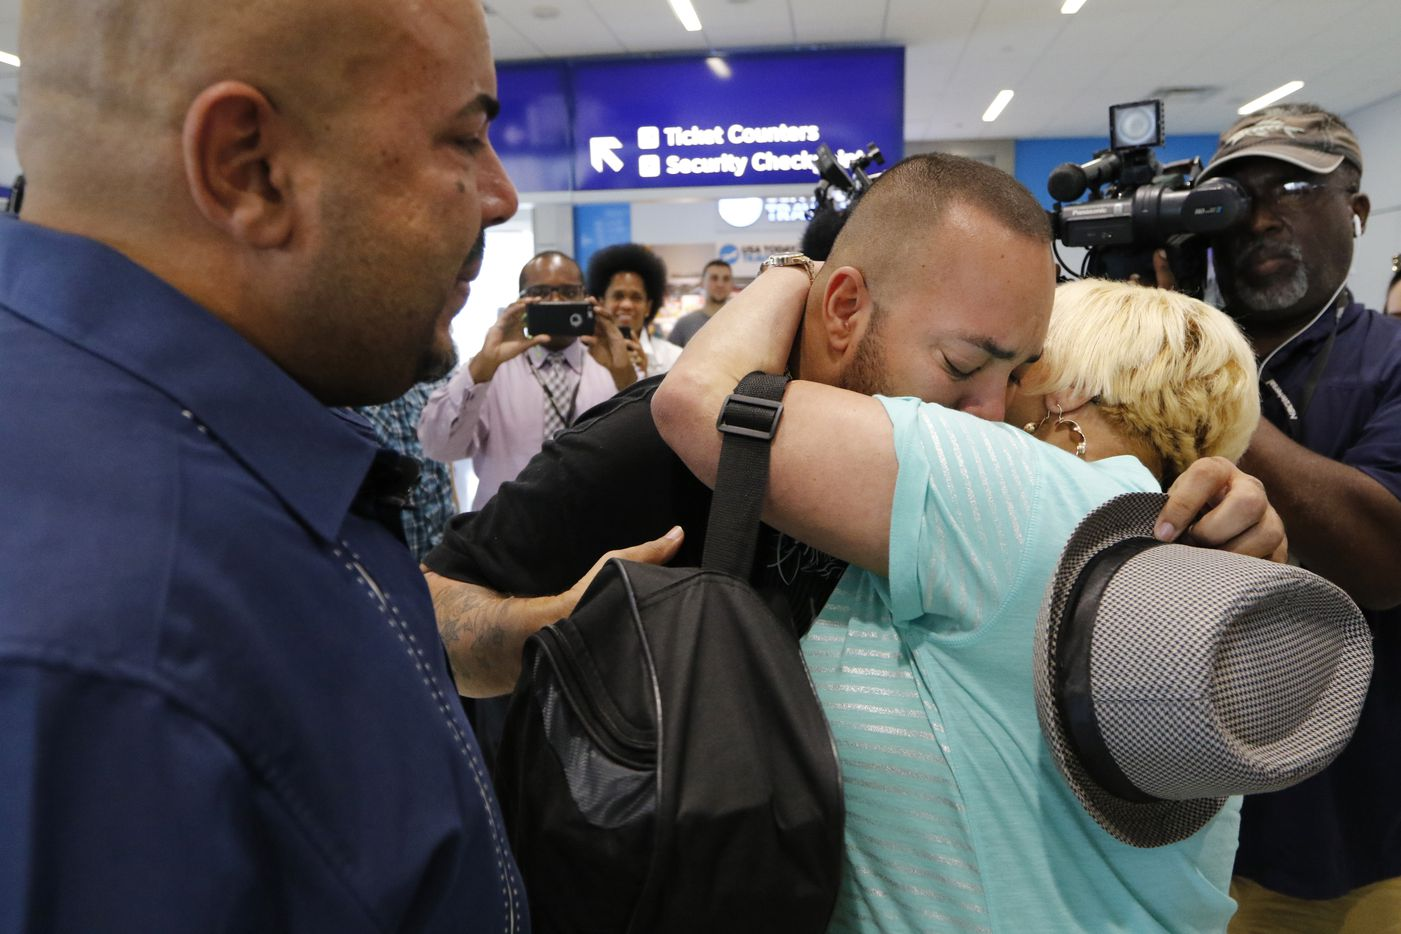 Anthony Wiggs, left and Raymond Ramirez, center, meet their biological mother Elsie Ramirez for the first time. The two were separated from their mother as infants, but a DNA search led them to her 47 years later. They were reunited on Friday, August 4, 2017 at Dallas/Fort Worth International Airport.